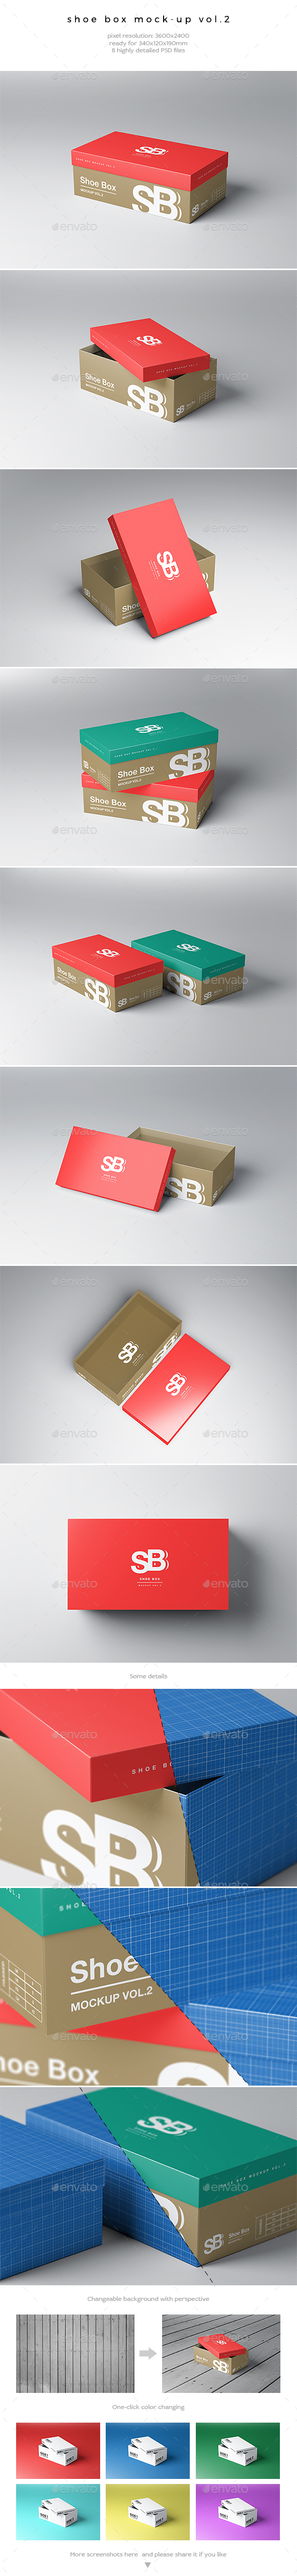 Shoe Box Mock-Up Vol.2 - Miscellaneous Packaging